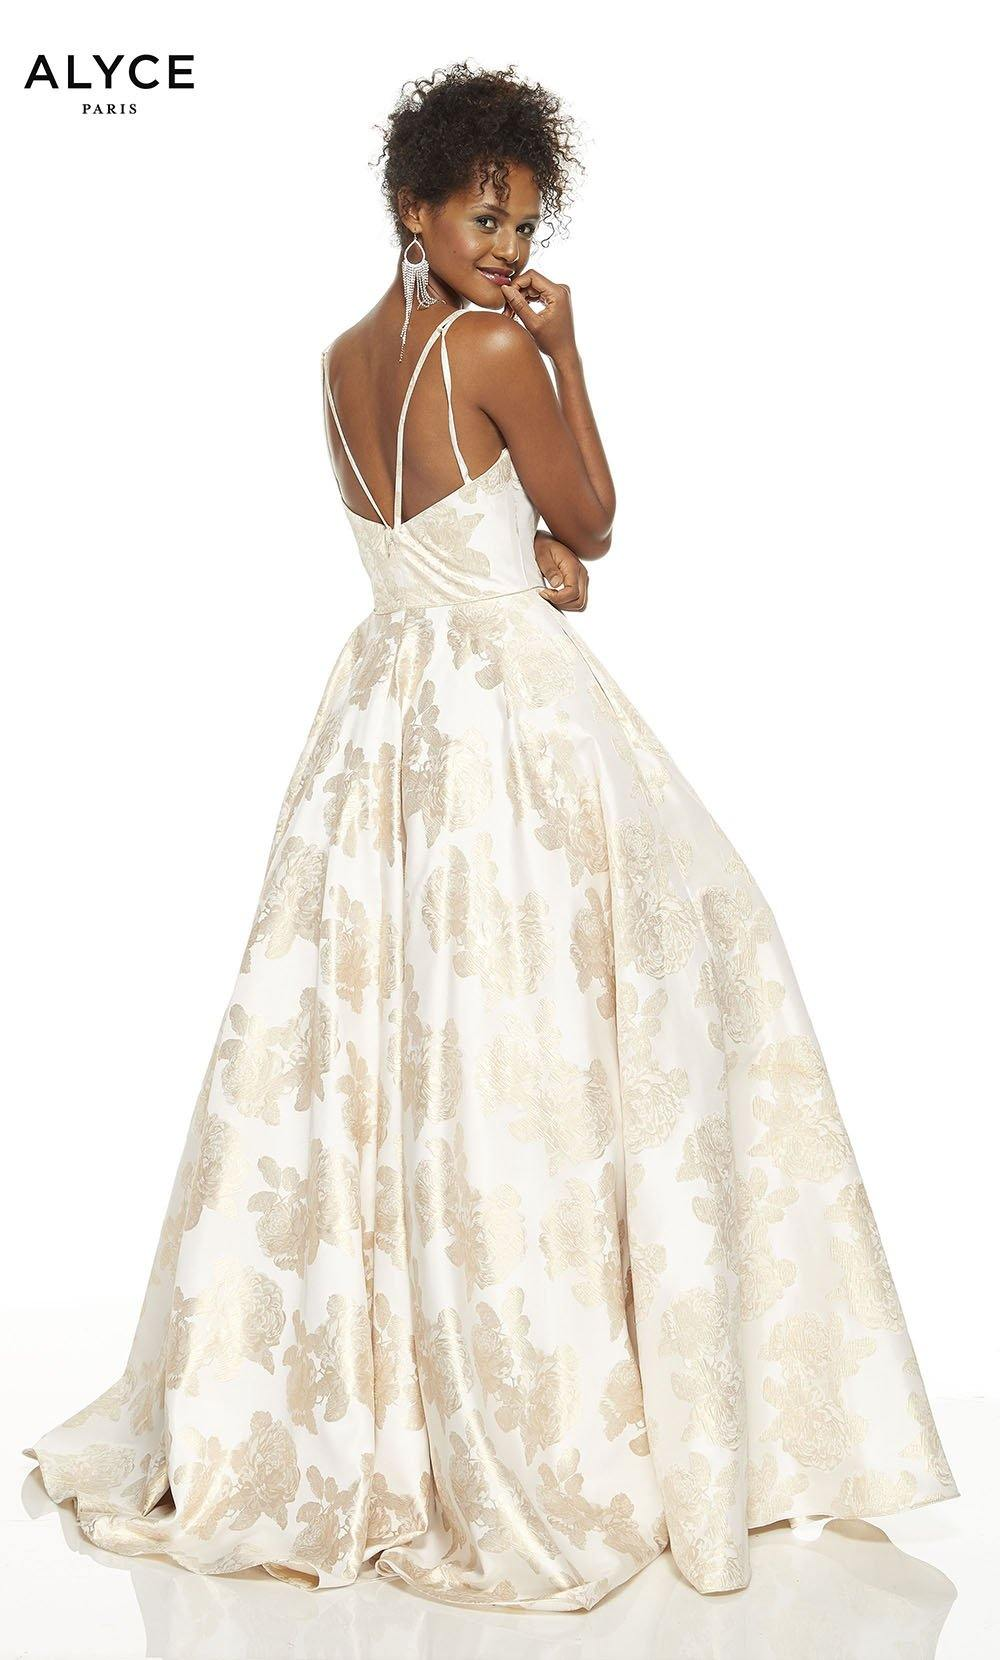 Gold-Ivory formal gown with an enclosed back